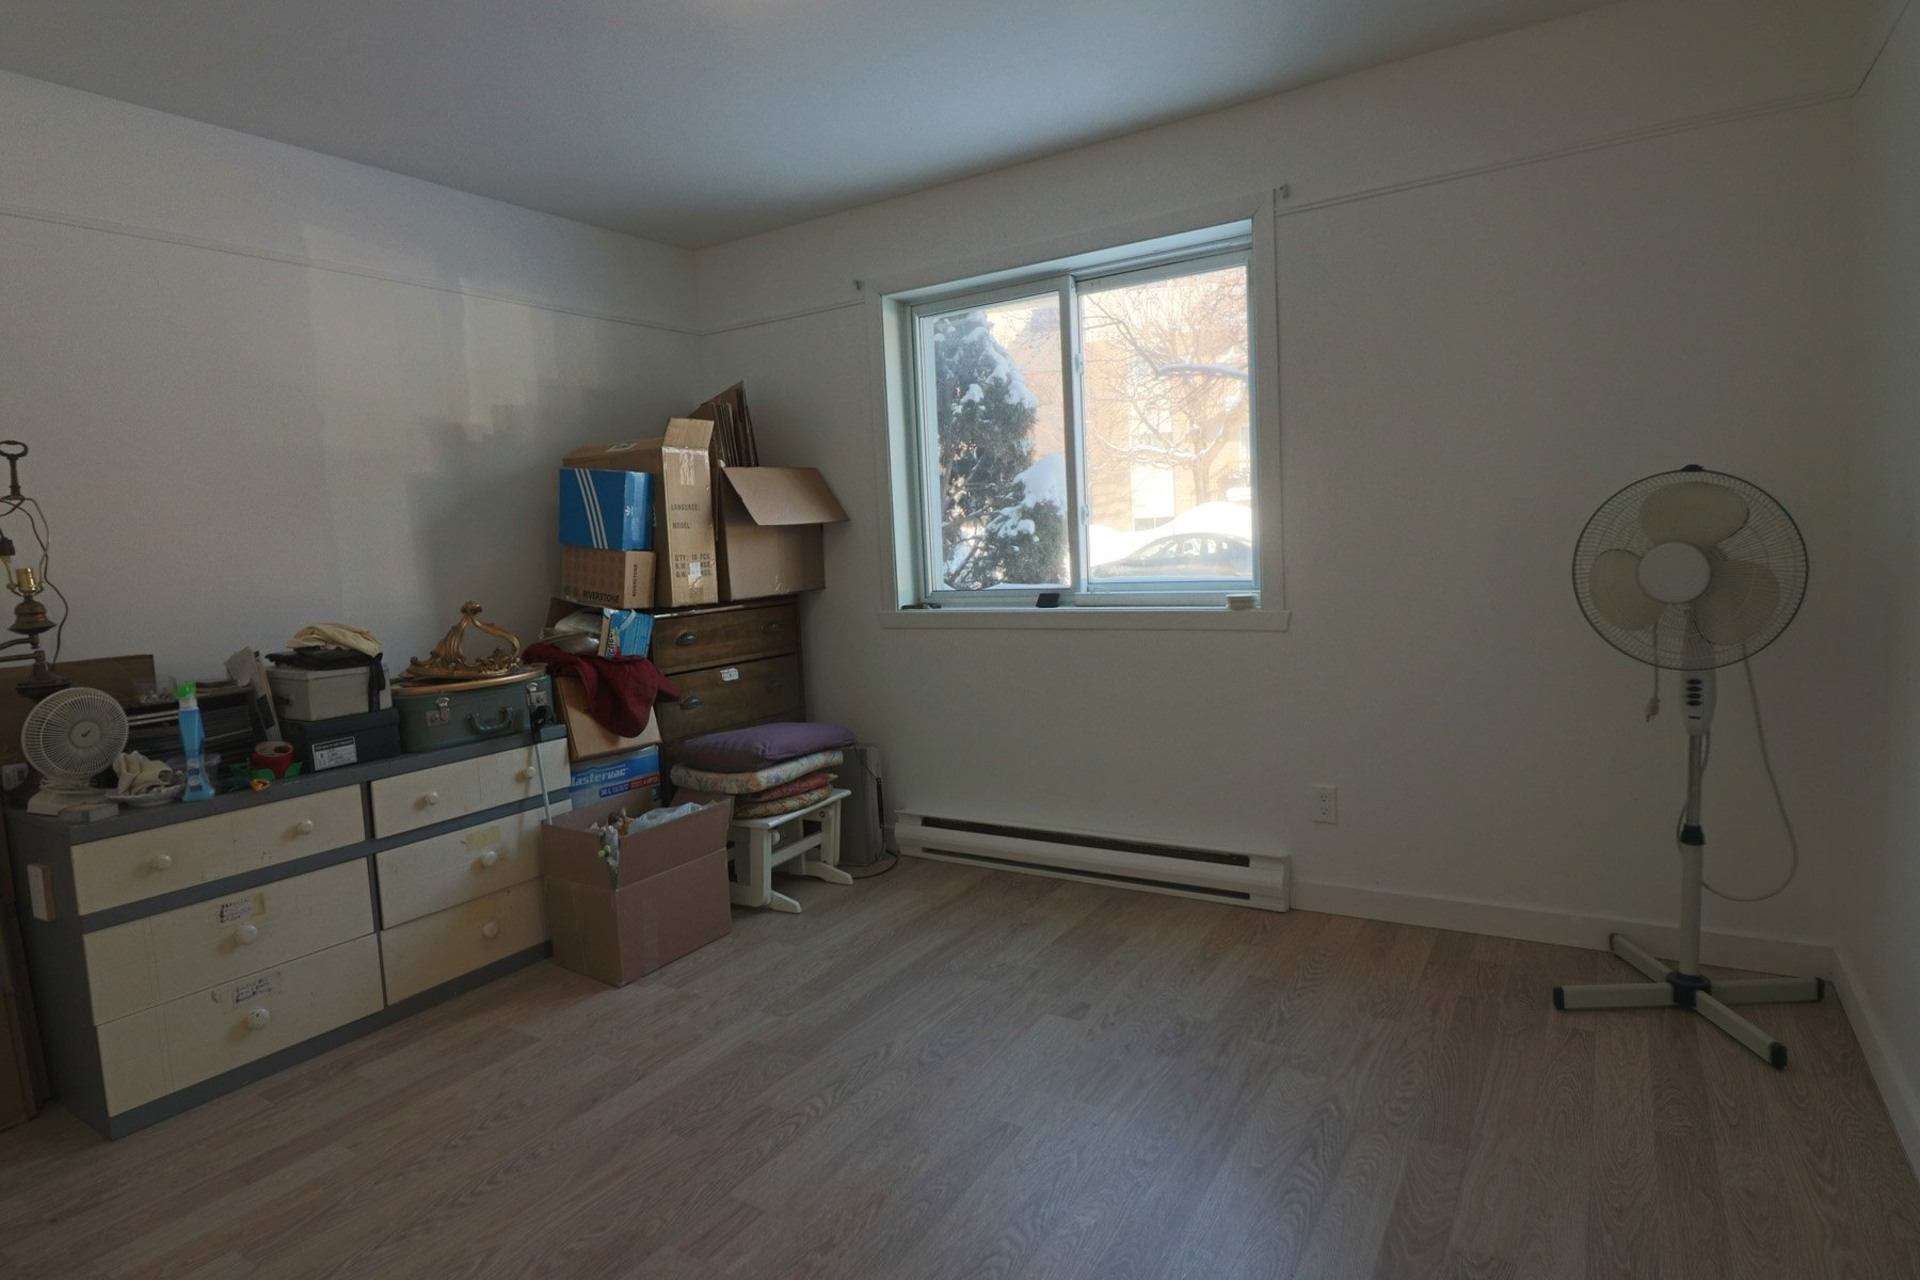 Apartment For sale Trois-Rivières - 8 rooms